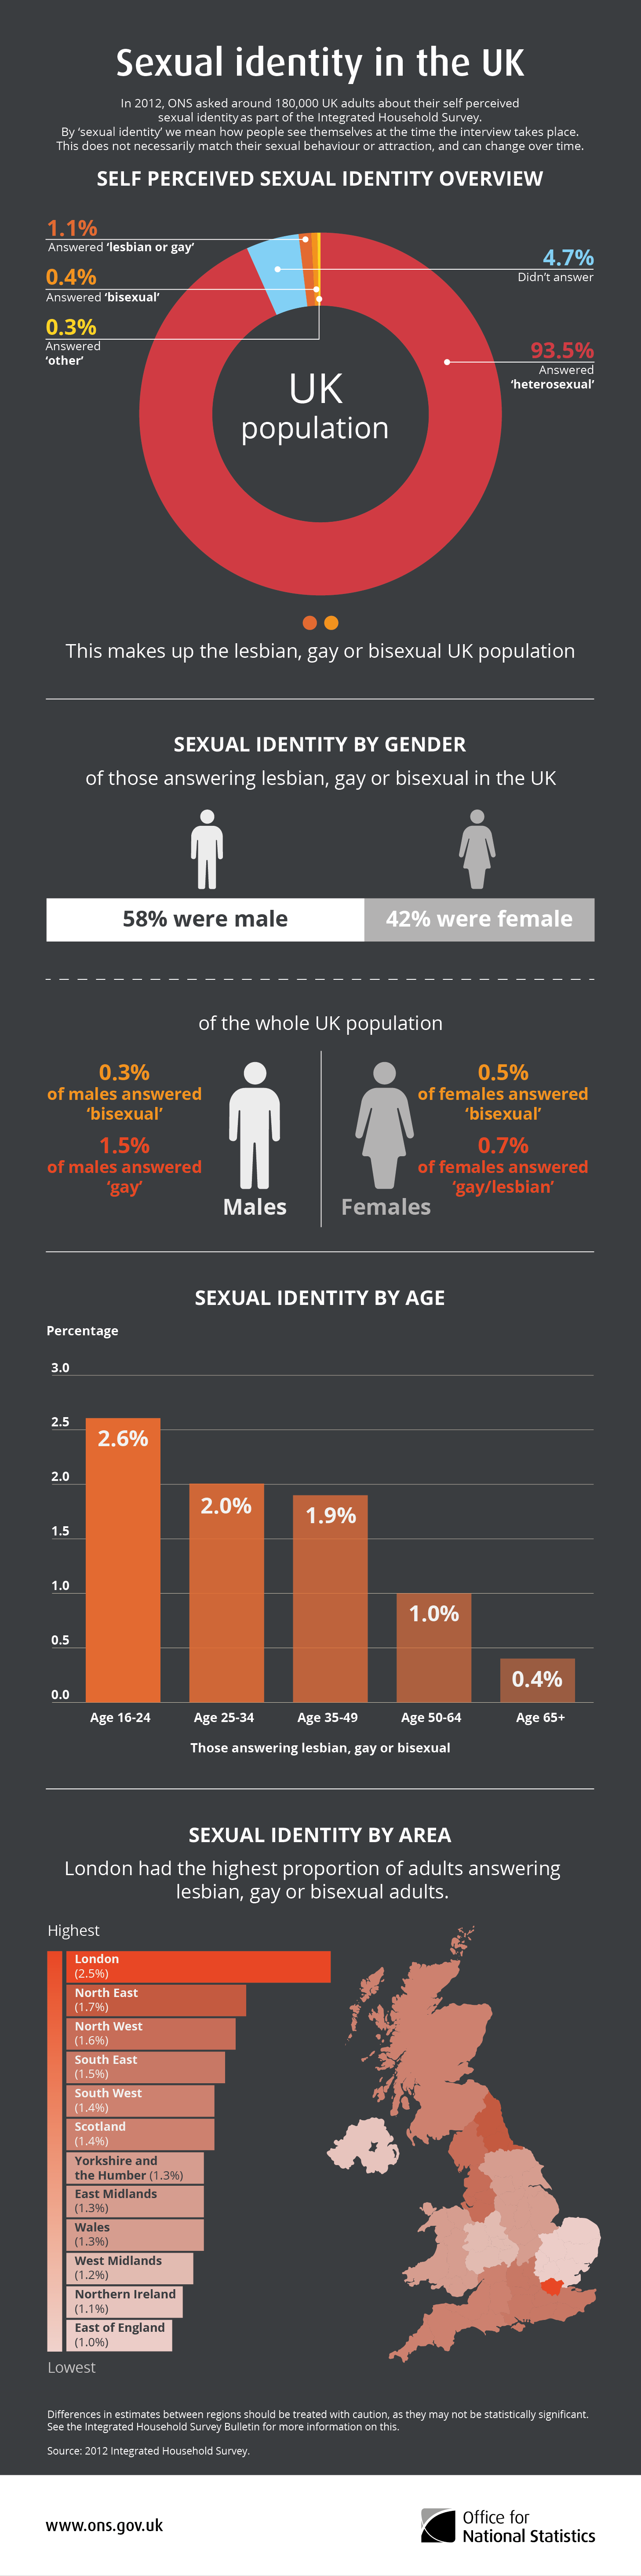 Sexual_Identity_in_the_UK,_2012.png